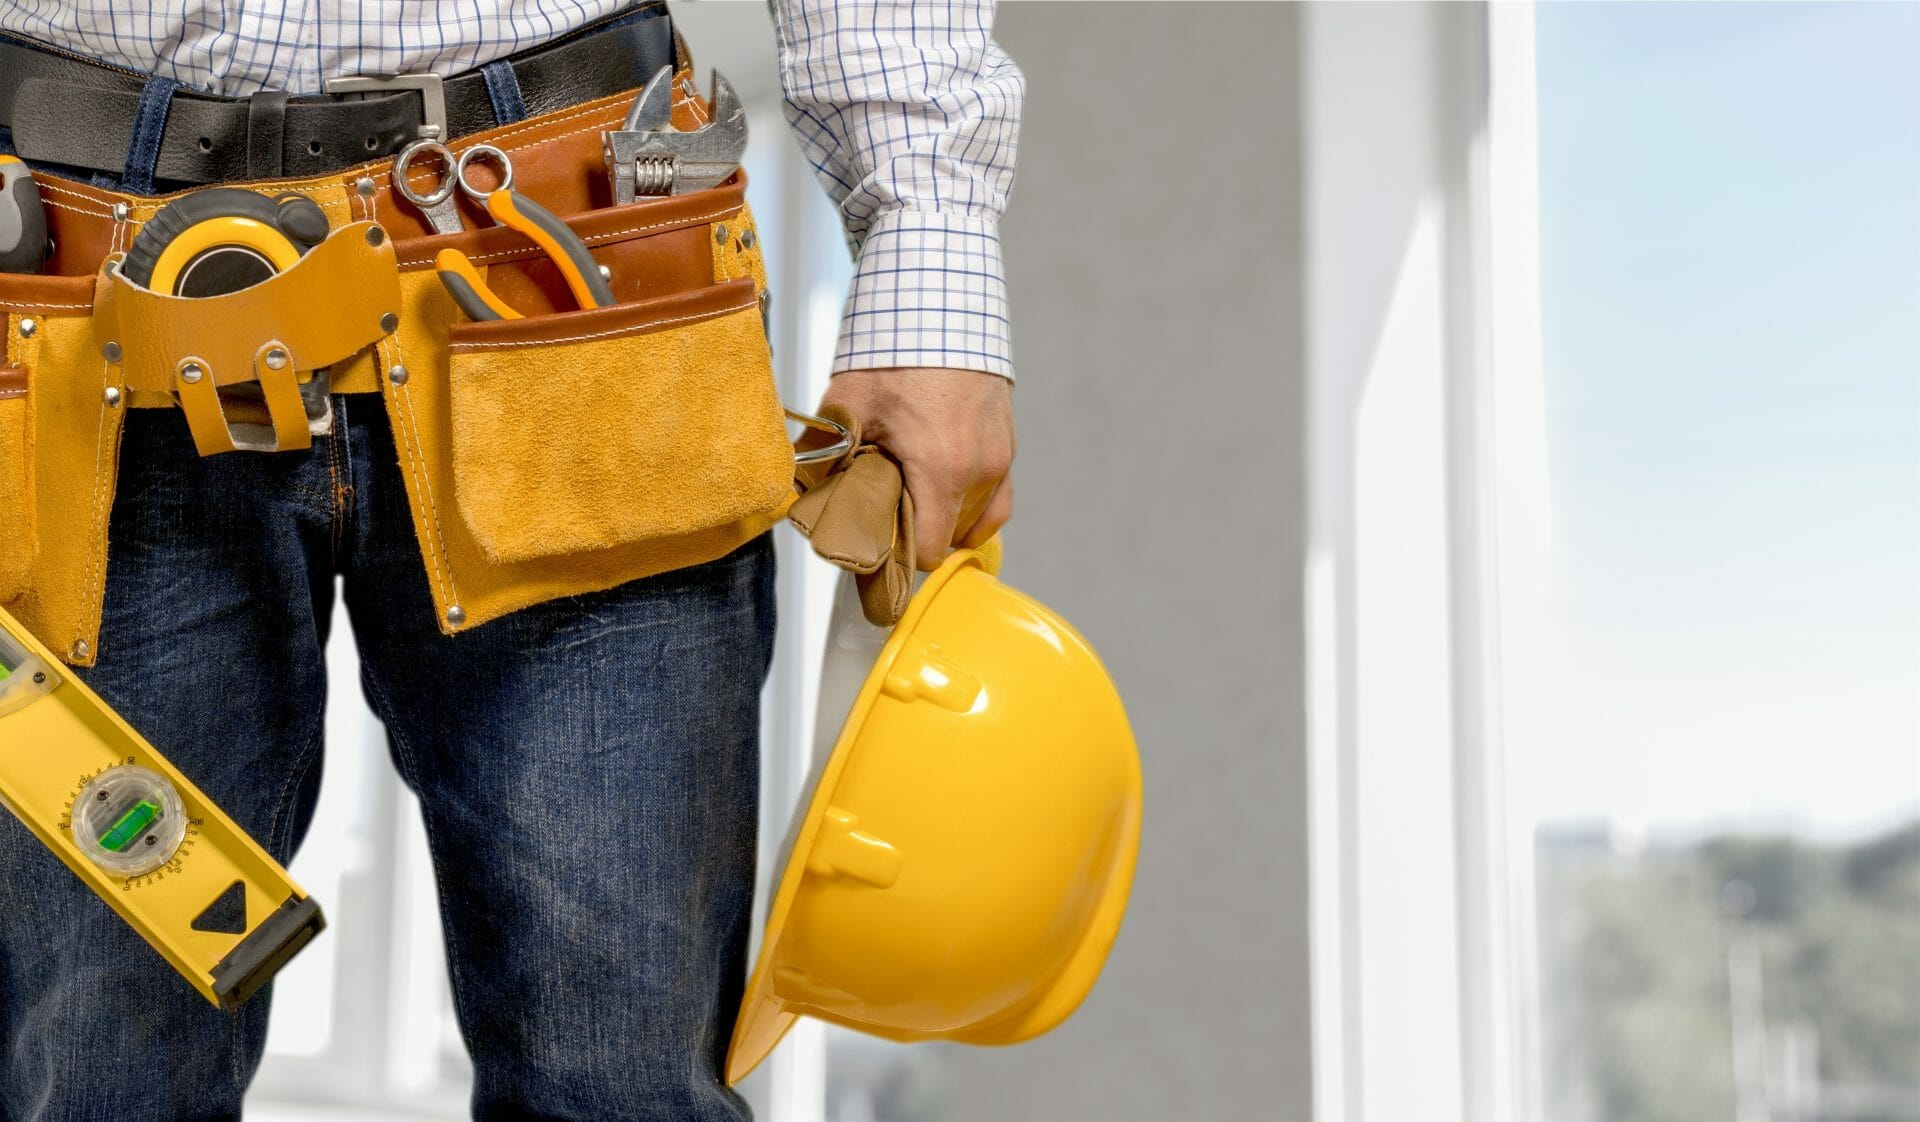 Tradesman Public Liability Insurance coverage